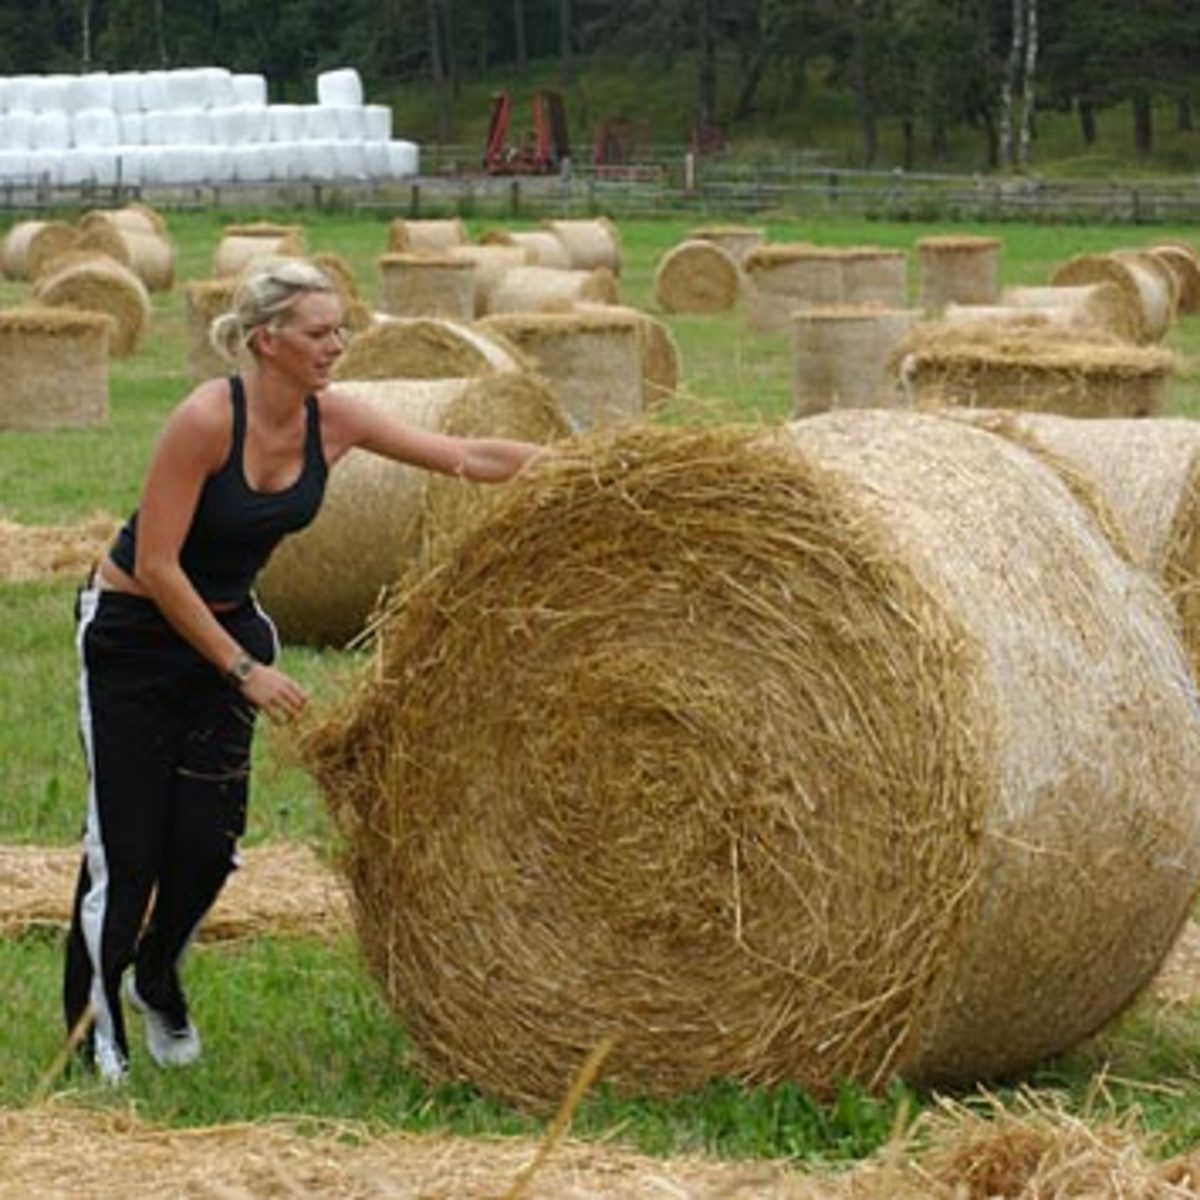 Lena unrolls one of her many, many hay bales.